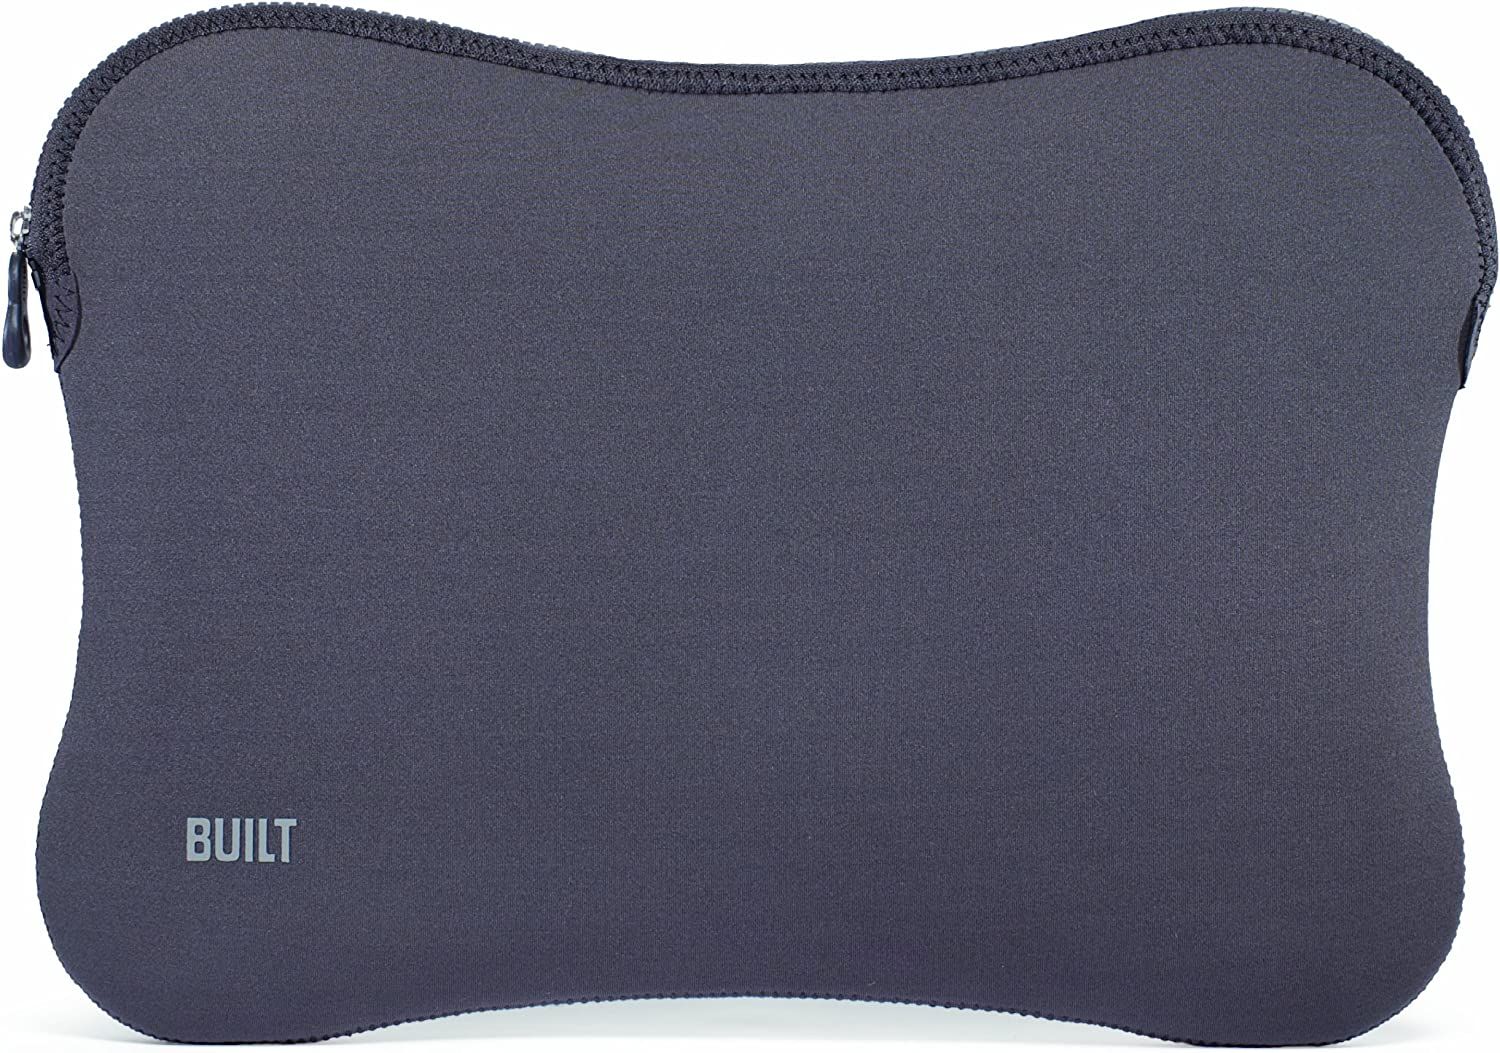 BUILT Neoprene Sleeve for 15-inch Macbook and Macbook Pro, Charcoal